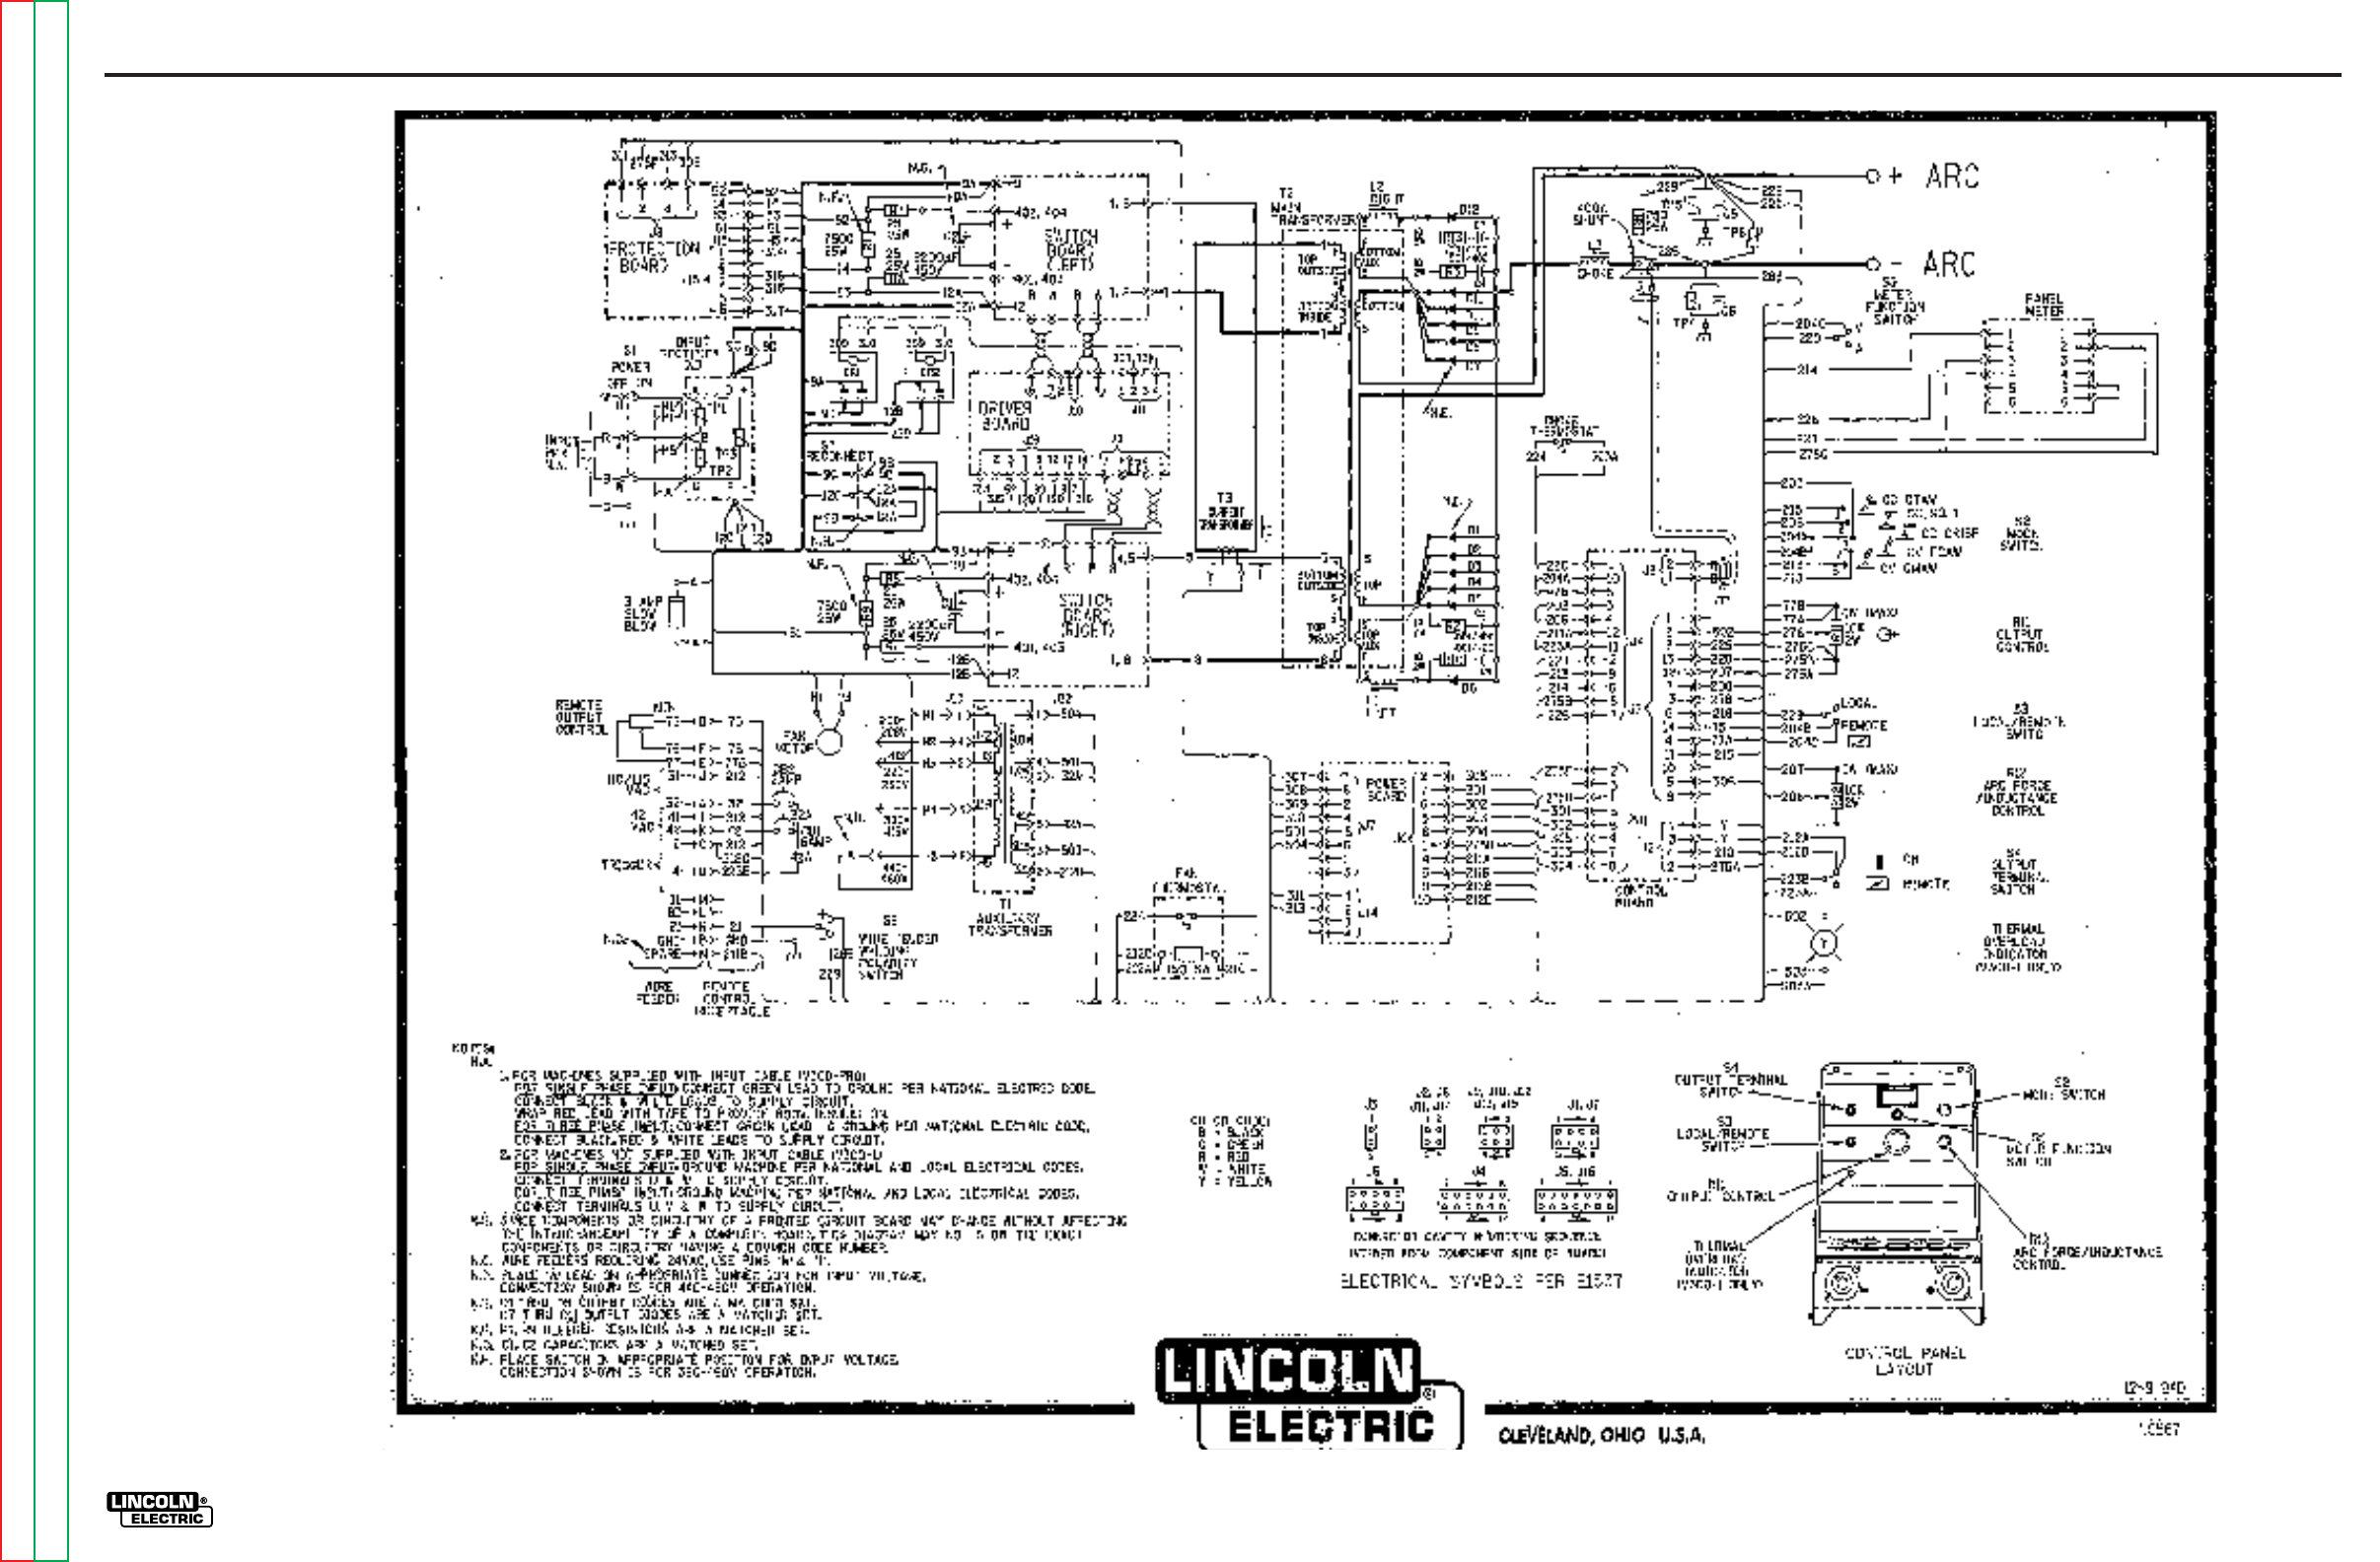 Lincoln Electric Invertec V300 Pro Svm105 B Users Manual